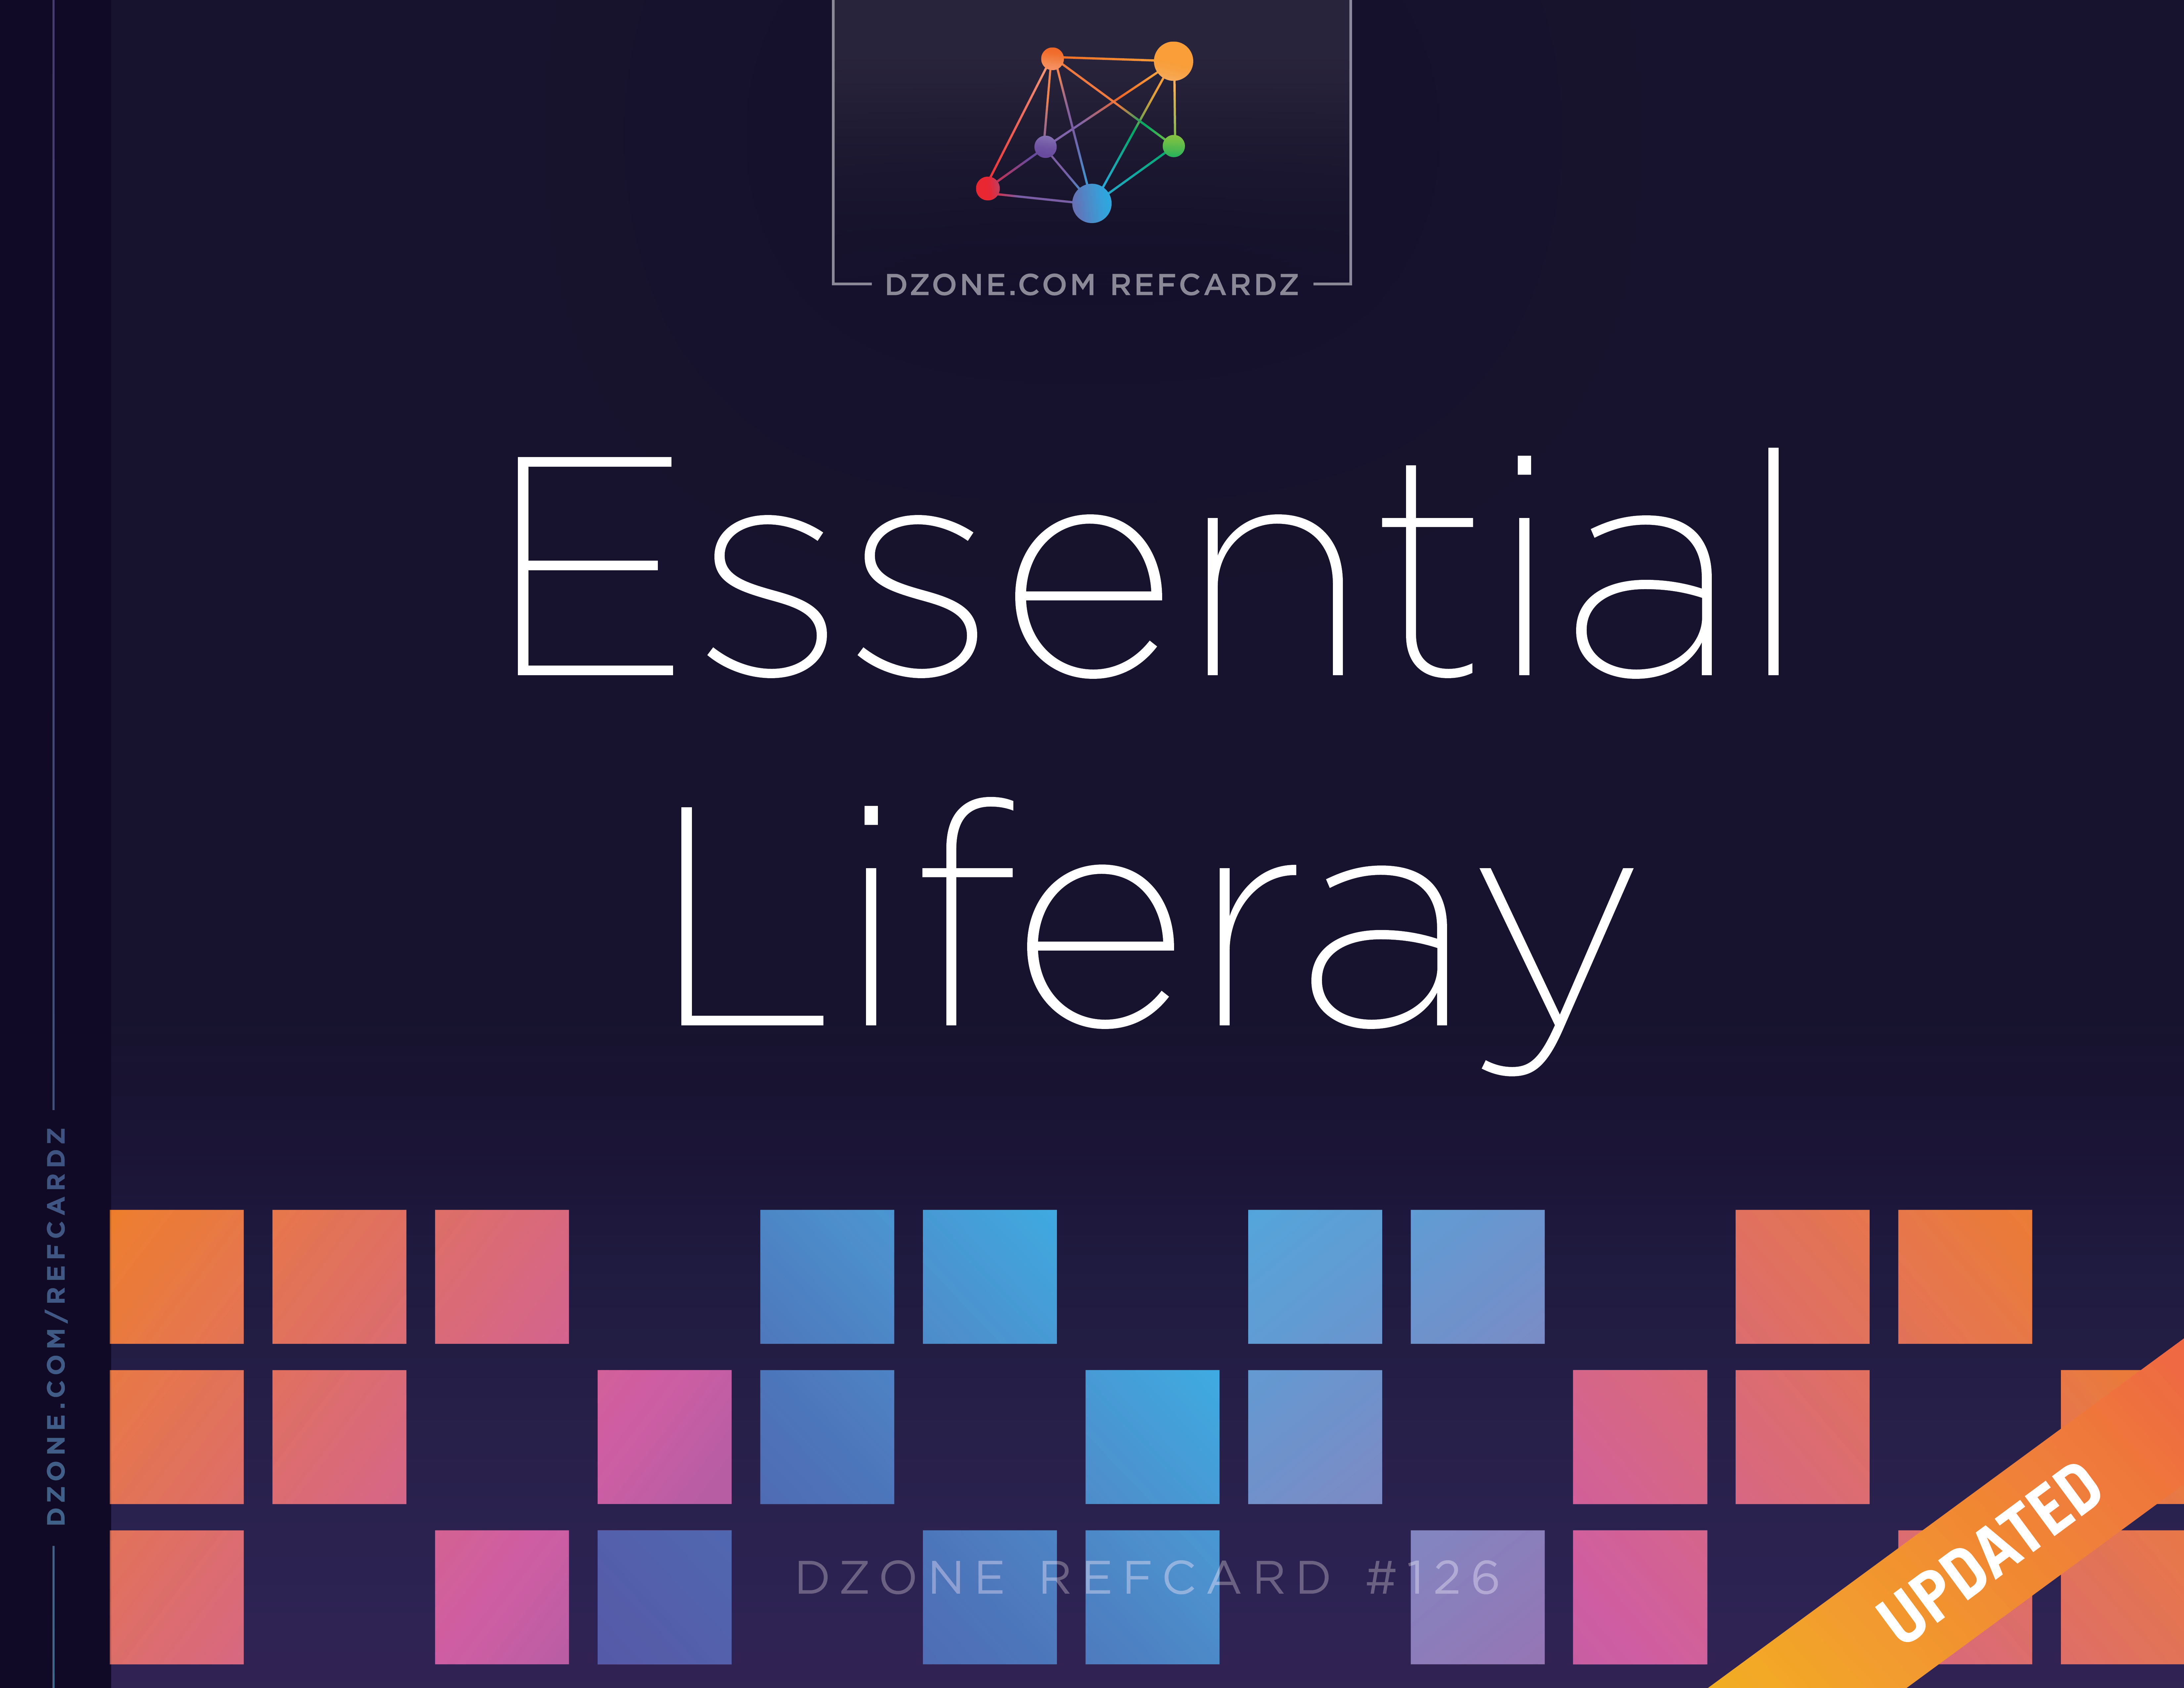 Essential Liferay Dzone Refcardz